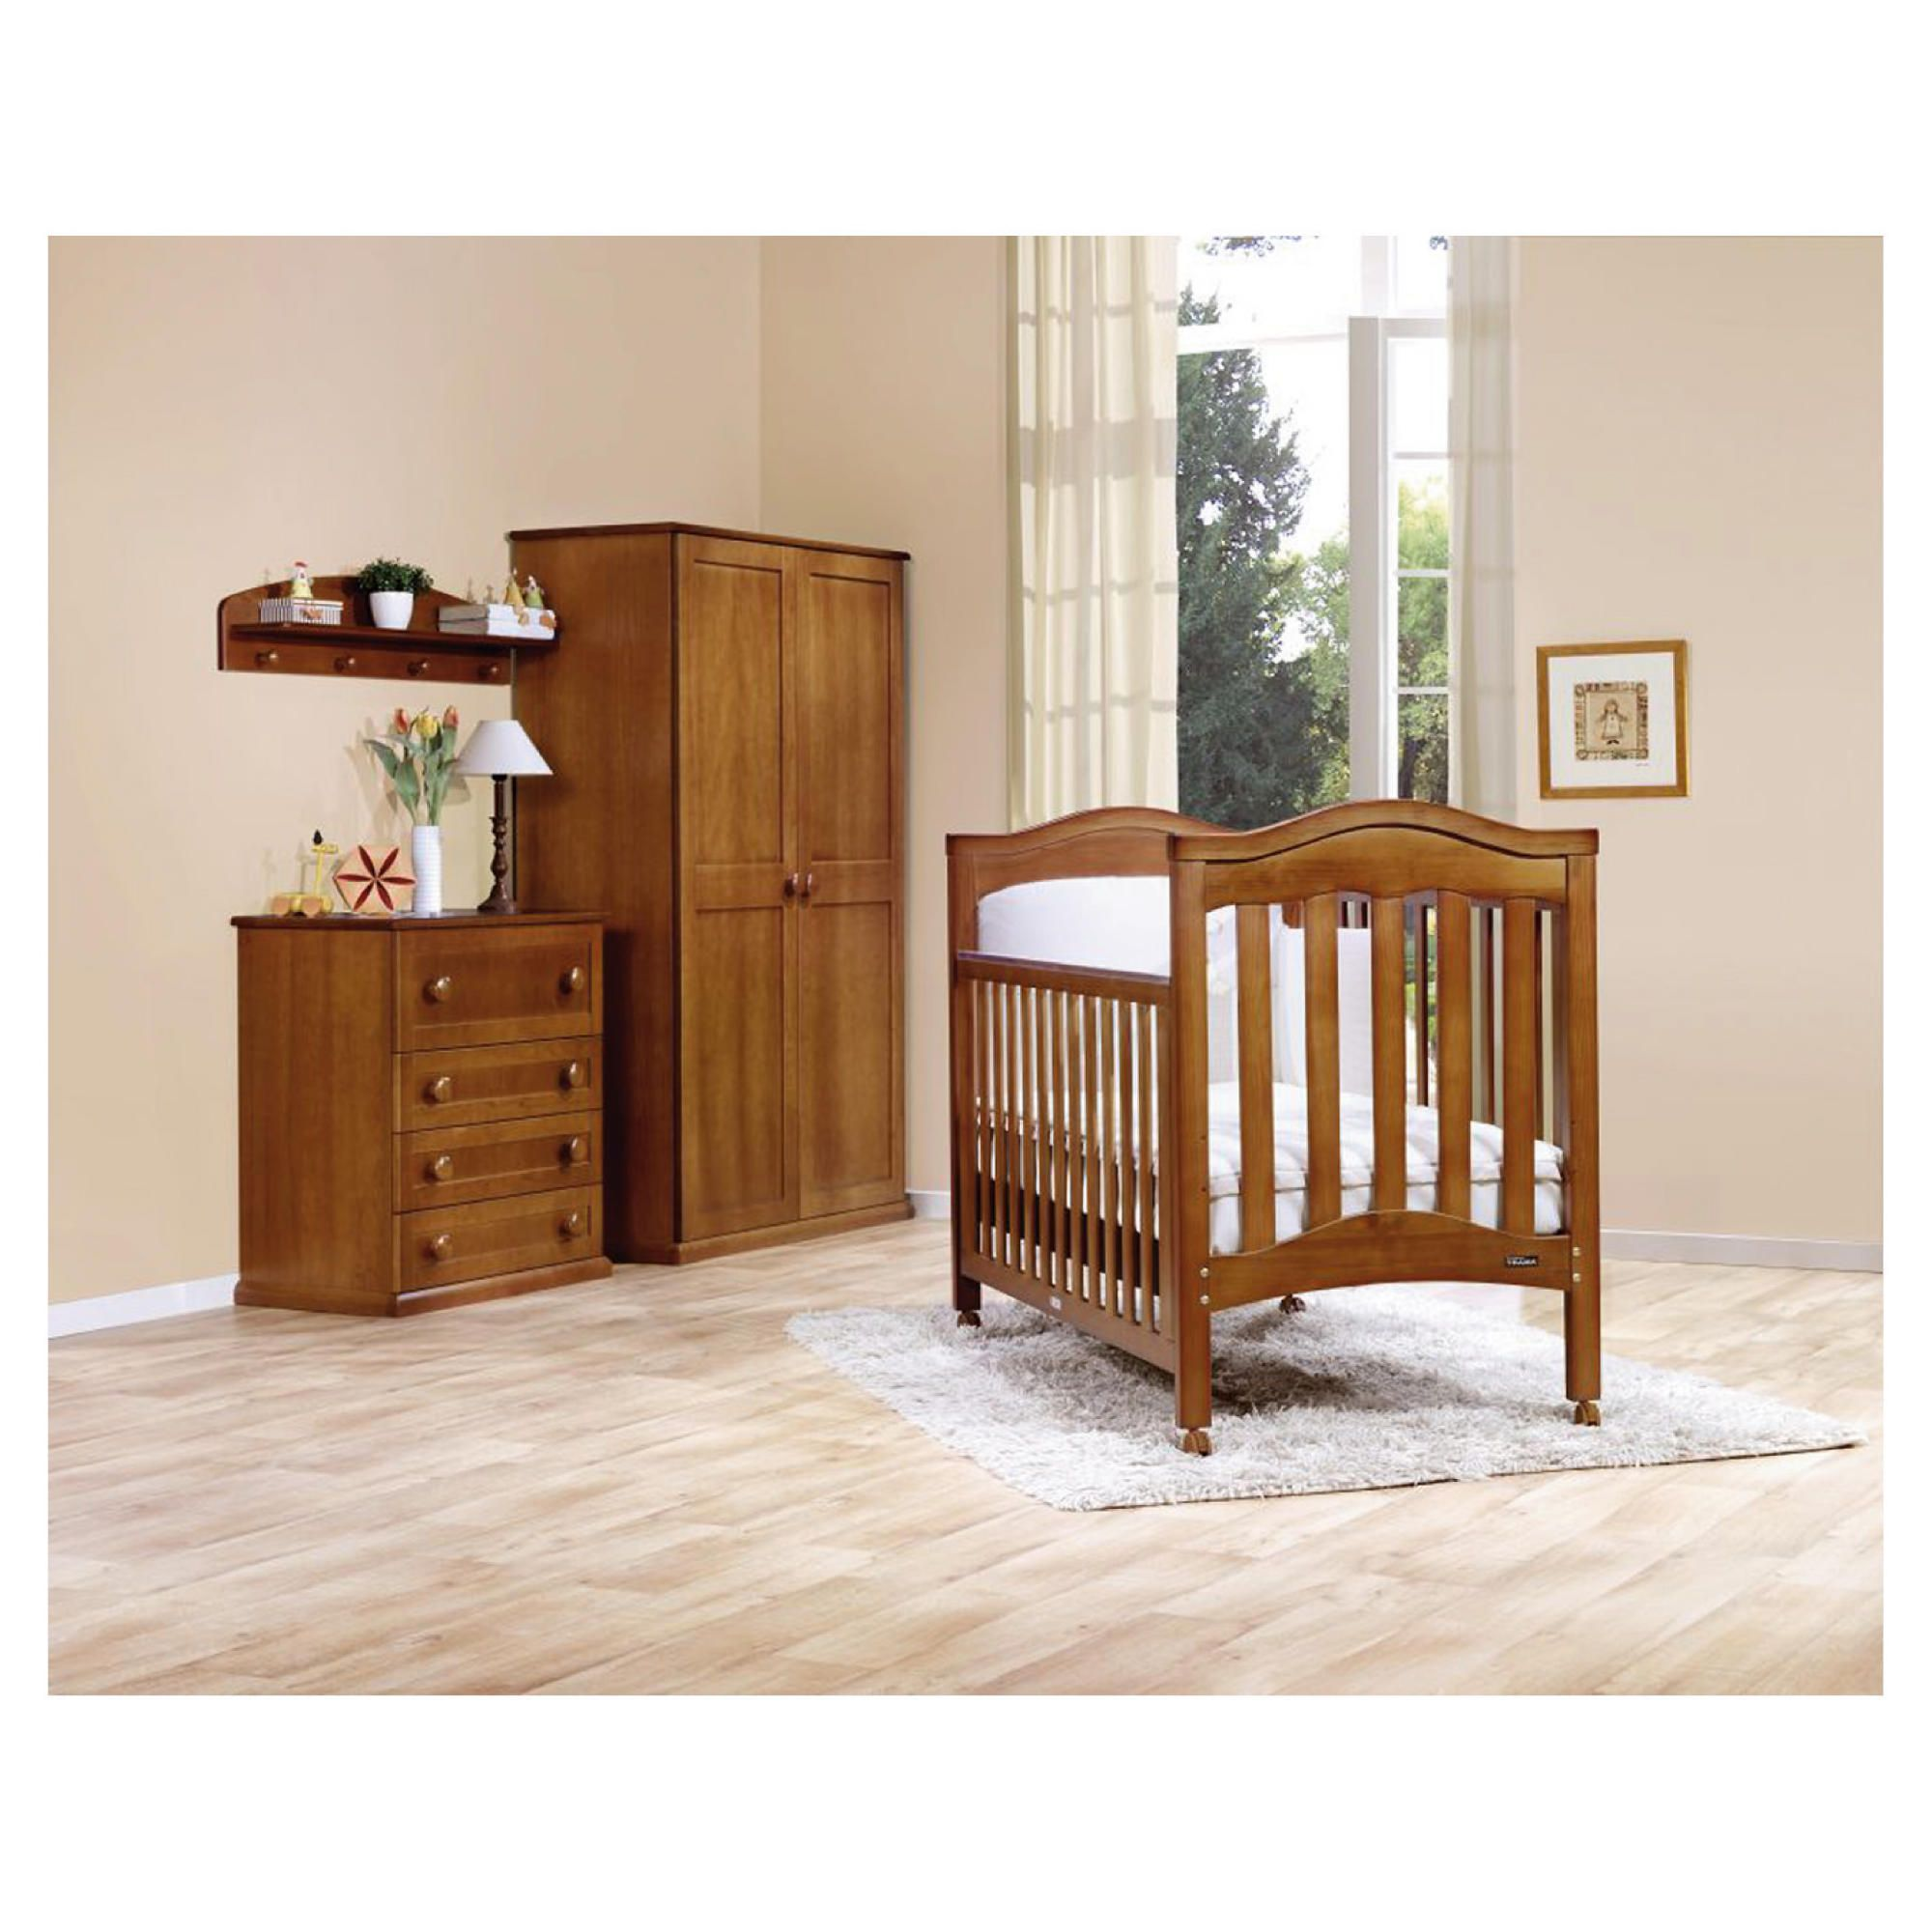 Bebecar 3 Piece Roomset at Tesco Direct